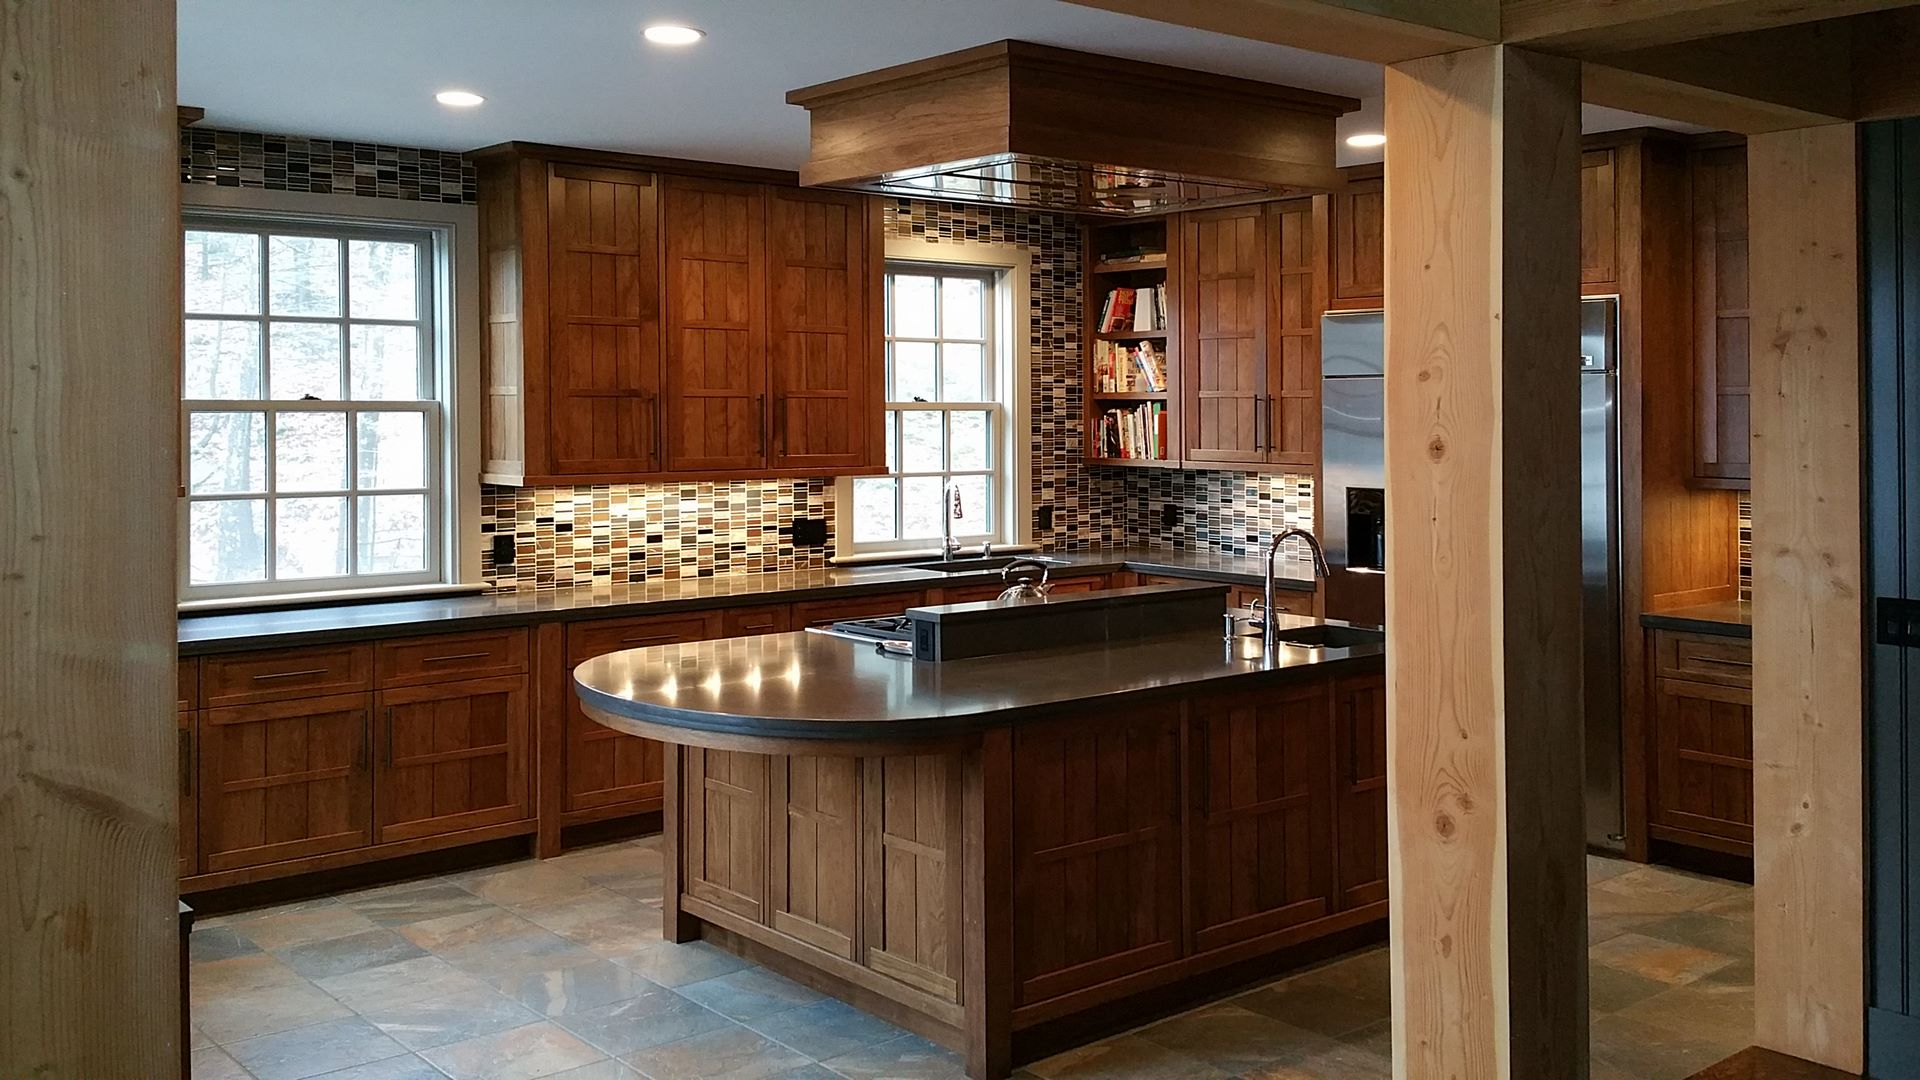 kitchens-cabinets-11